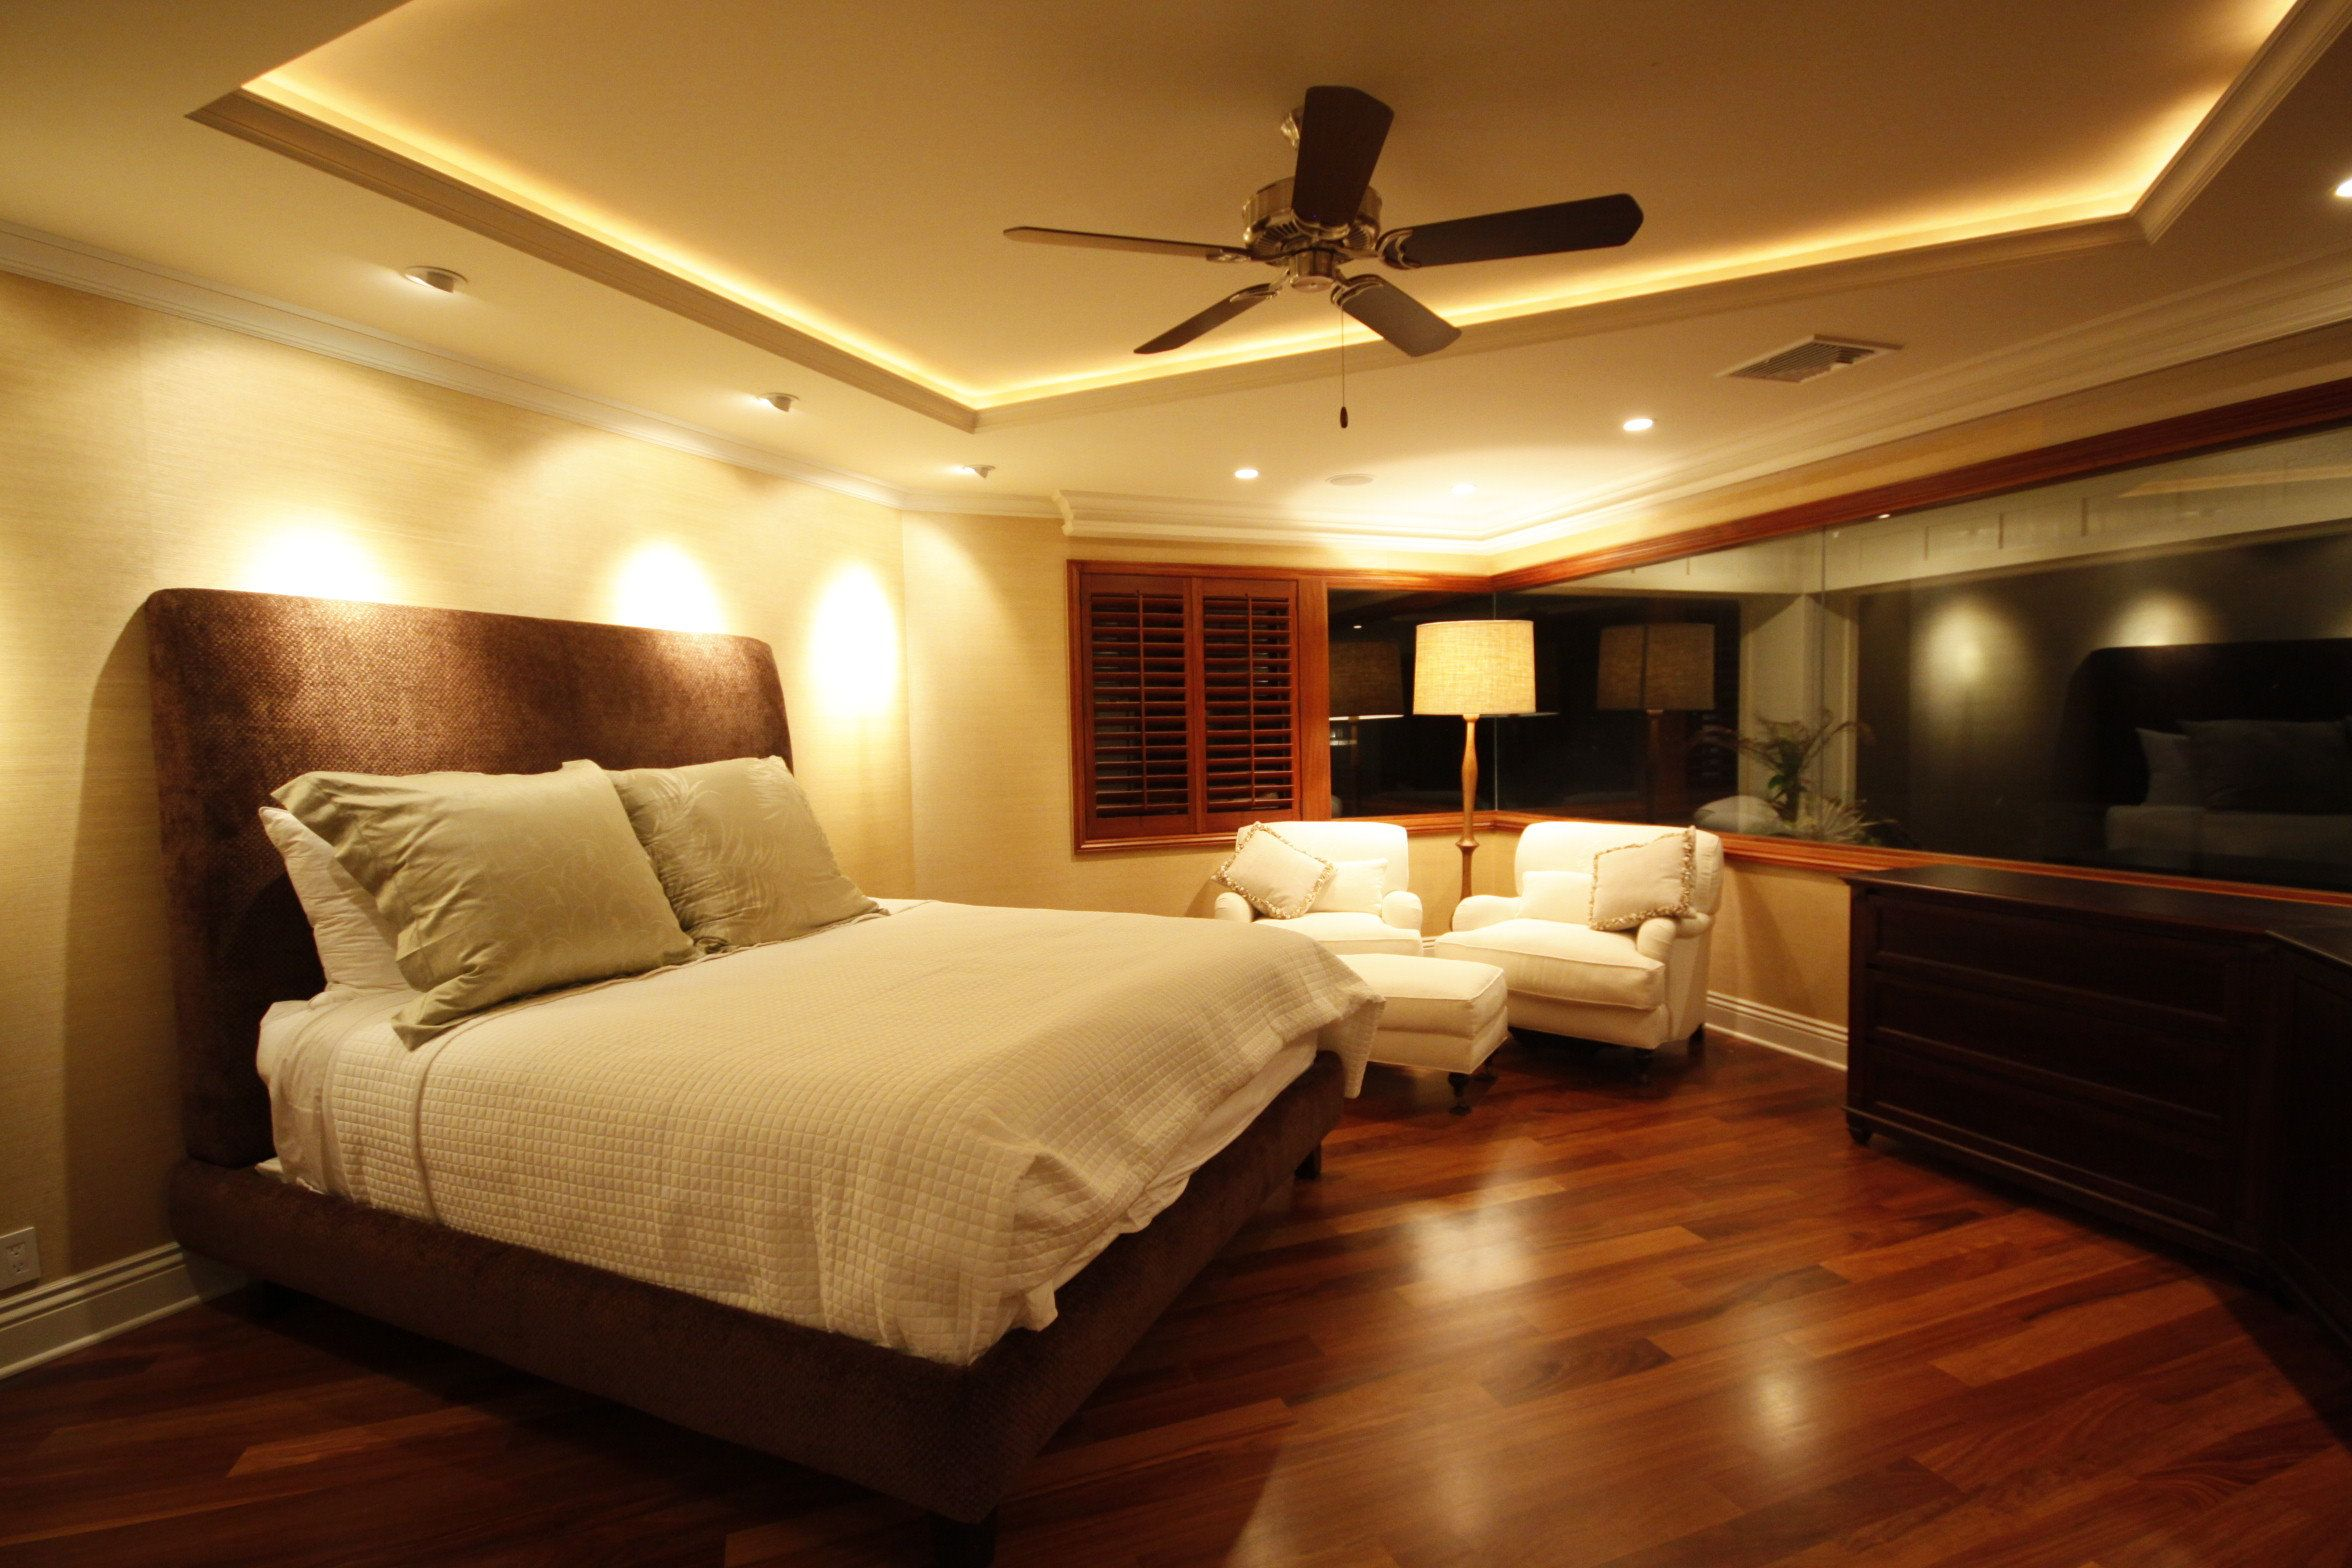 Appealing master bedroom modern decor with wooden floors for Bedroom mural designs